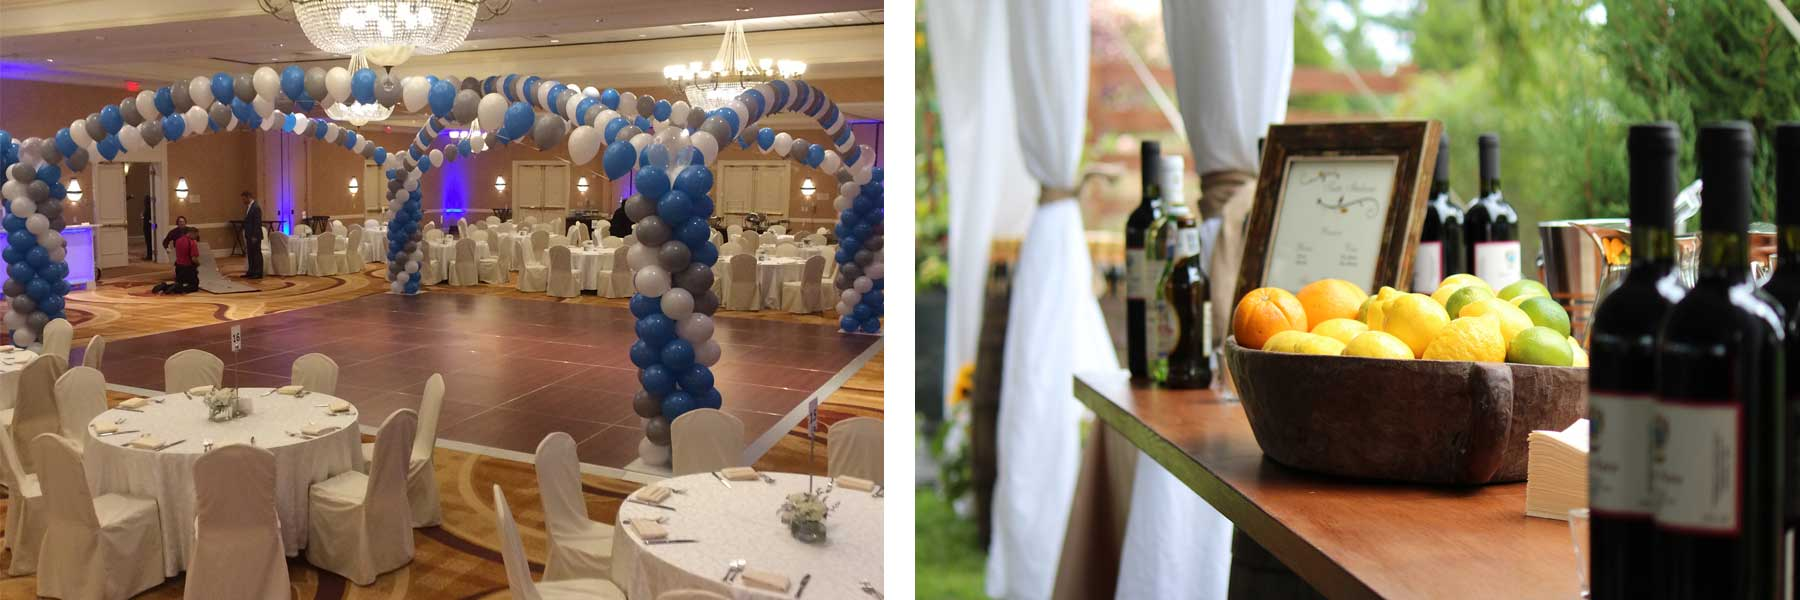 Event rentals in Central New Jersey